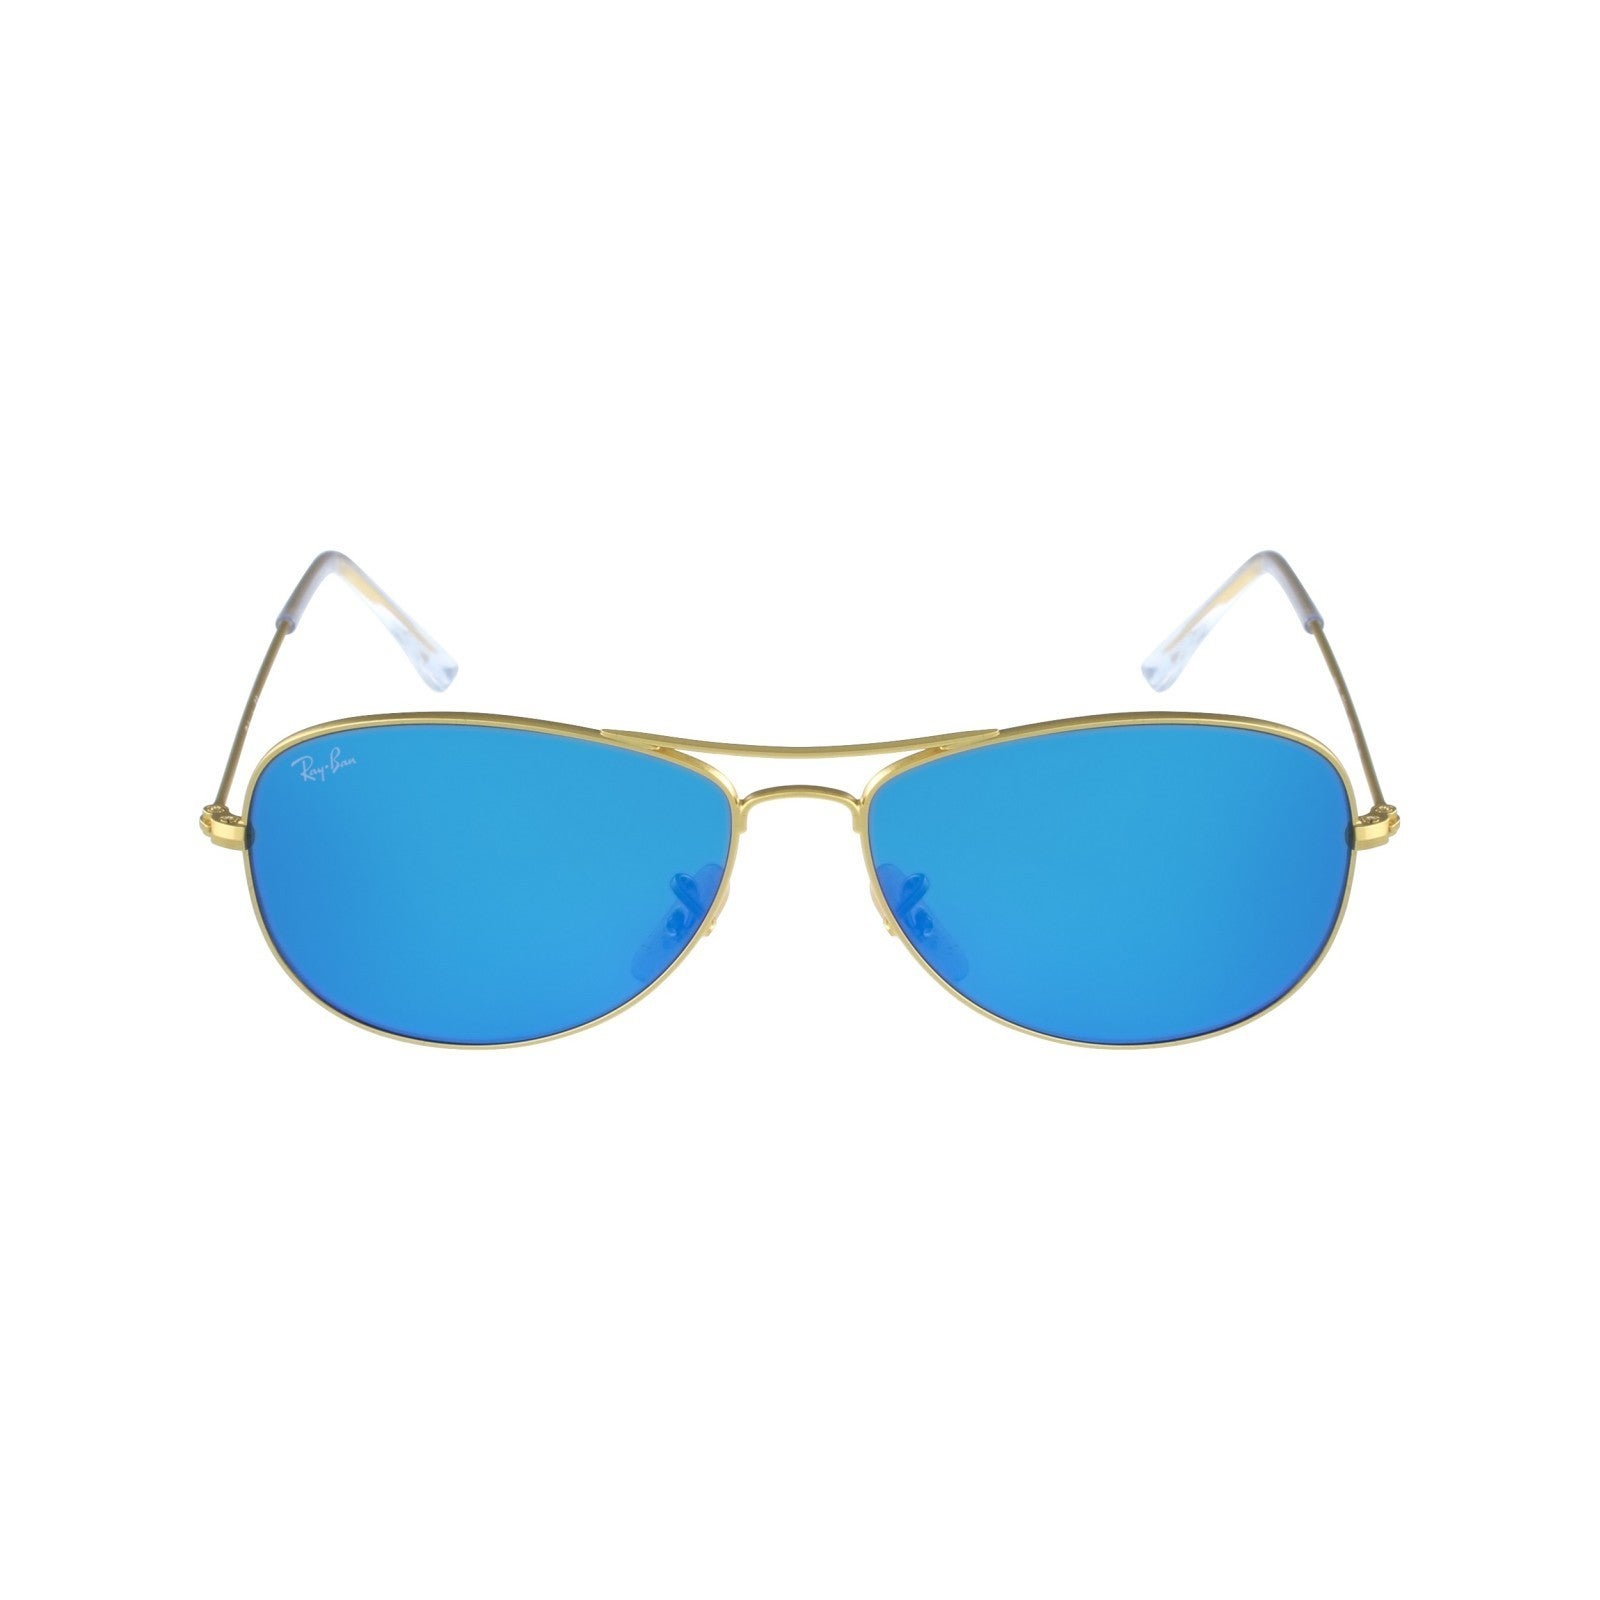 15a9008ae3 ... ireland shop ray ban rb3362 cockpit sunglasses gold frame blue flash  lens free shipping today overstock